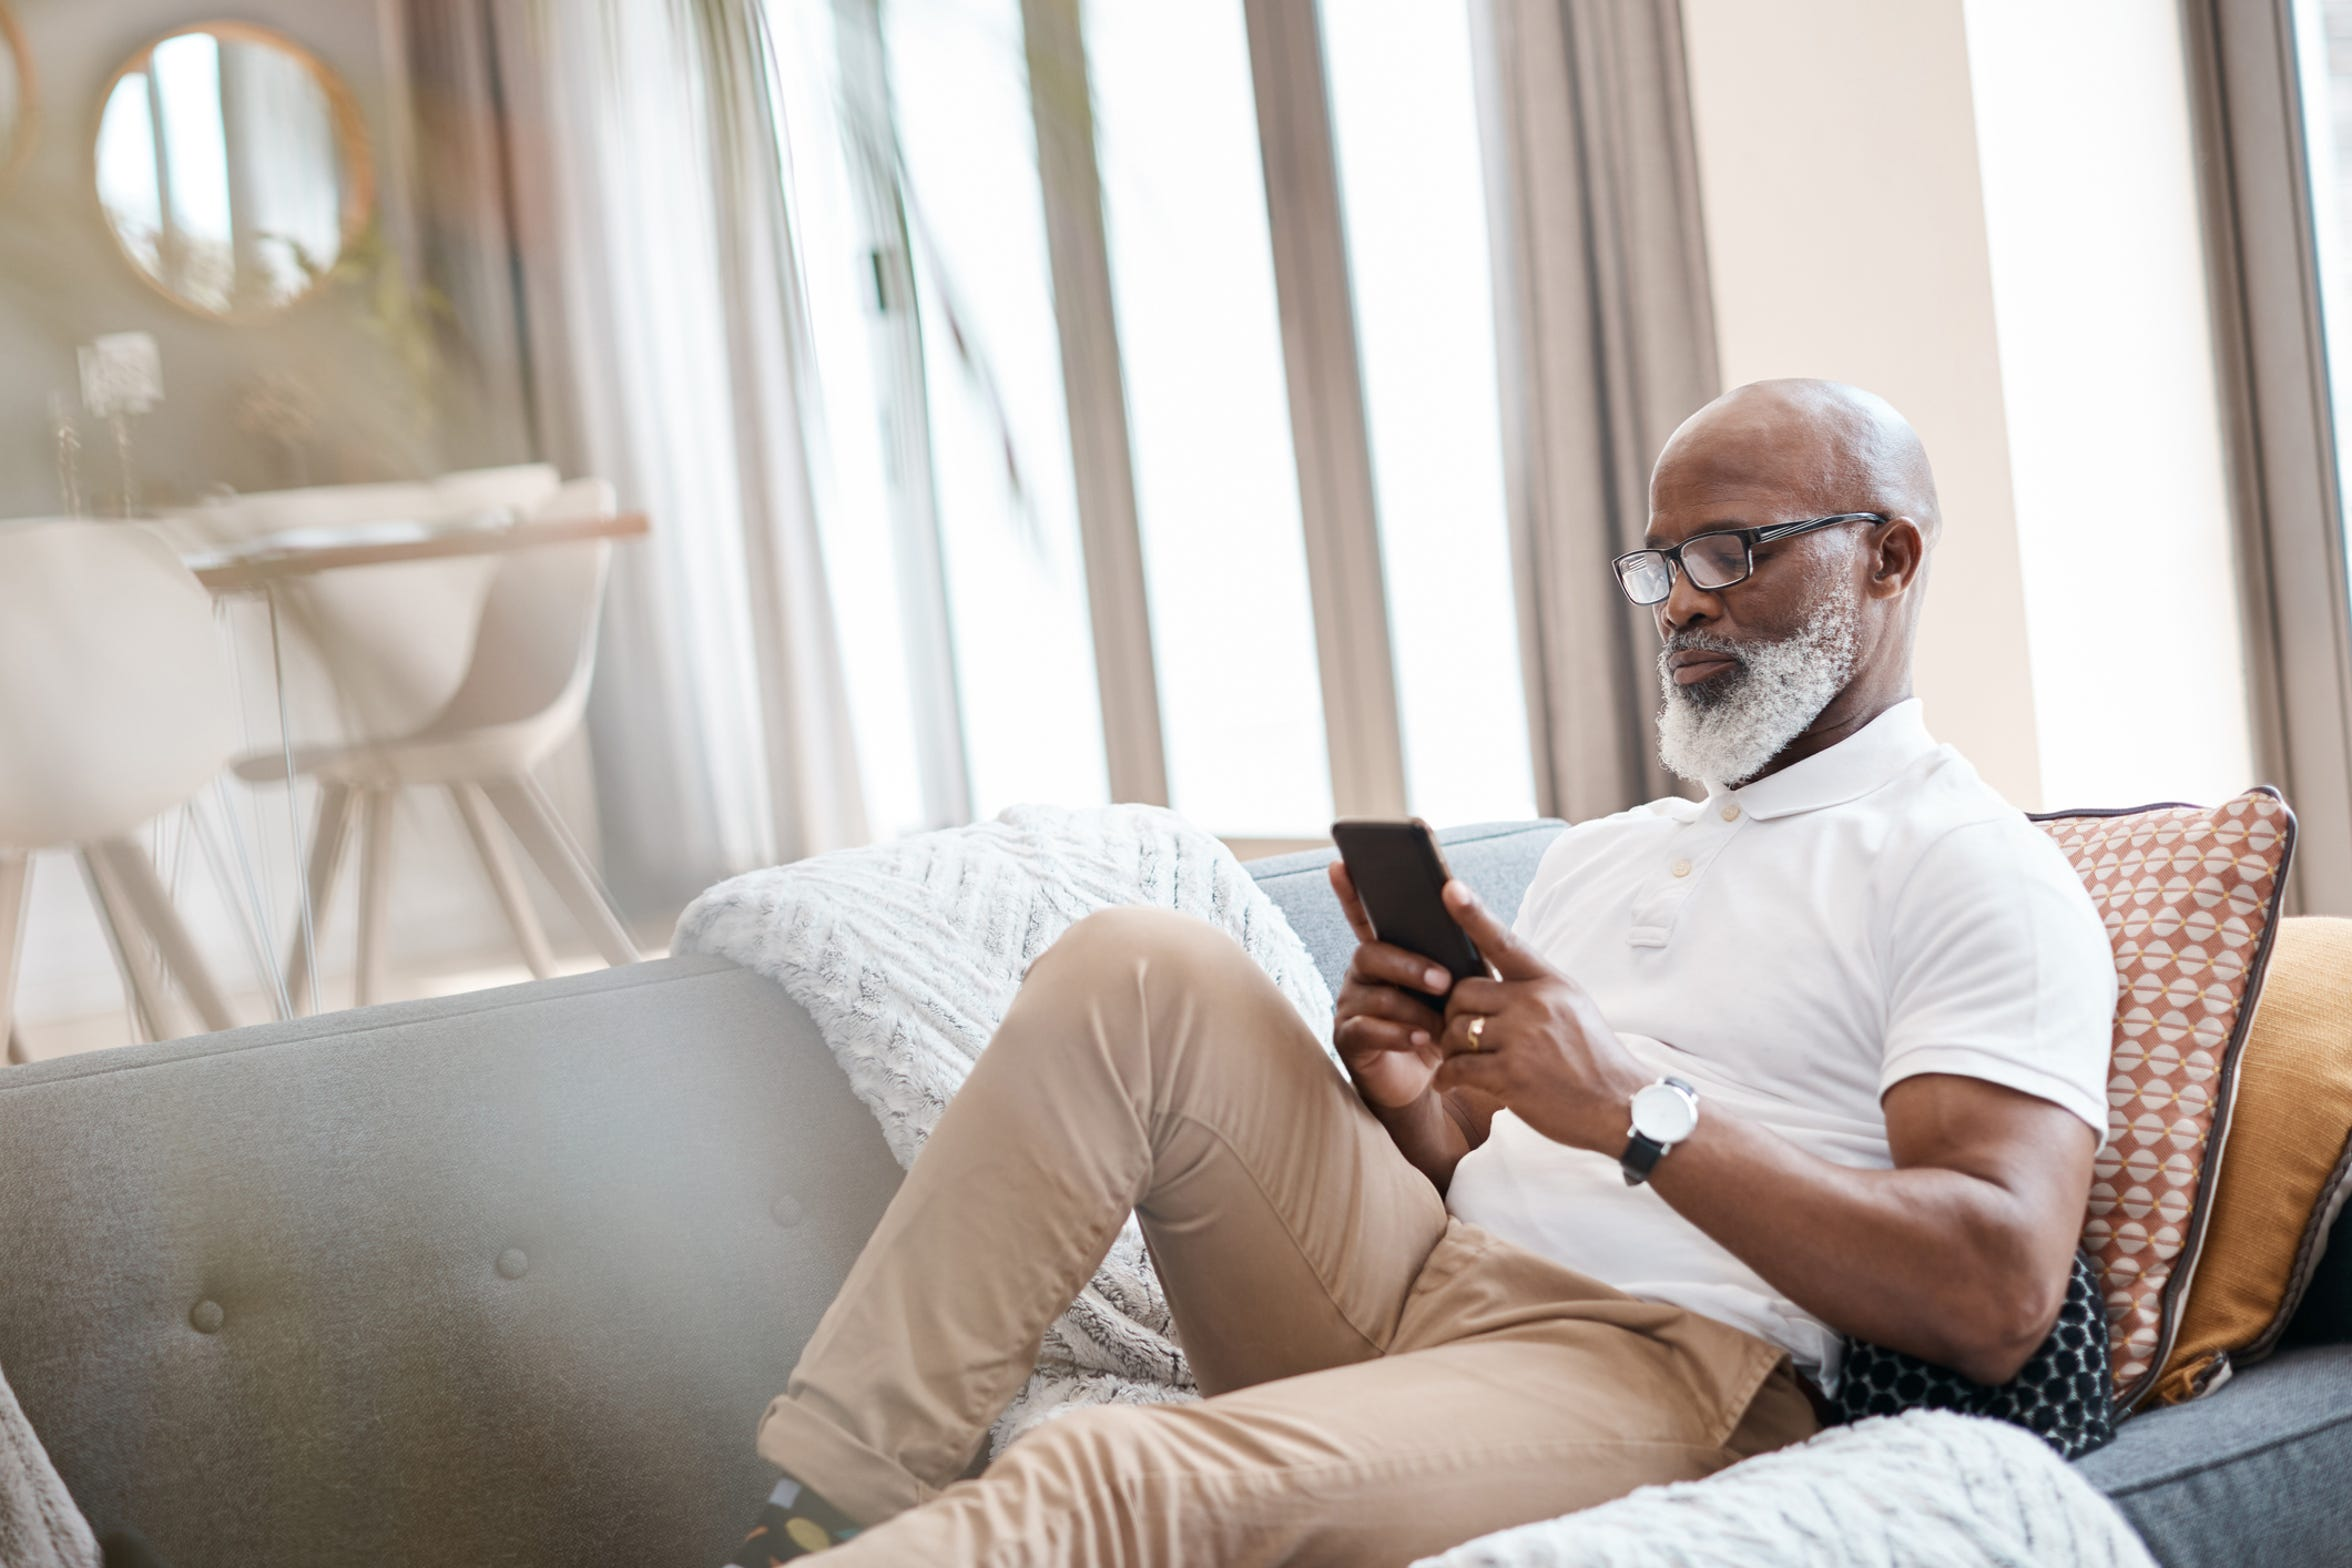 Mental health professionals predict that mobile apps for mental well-being will continue to evolve with new technology.